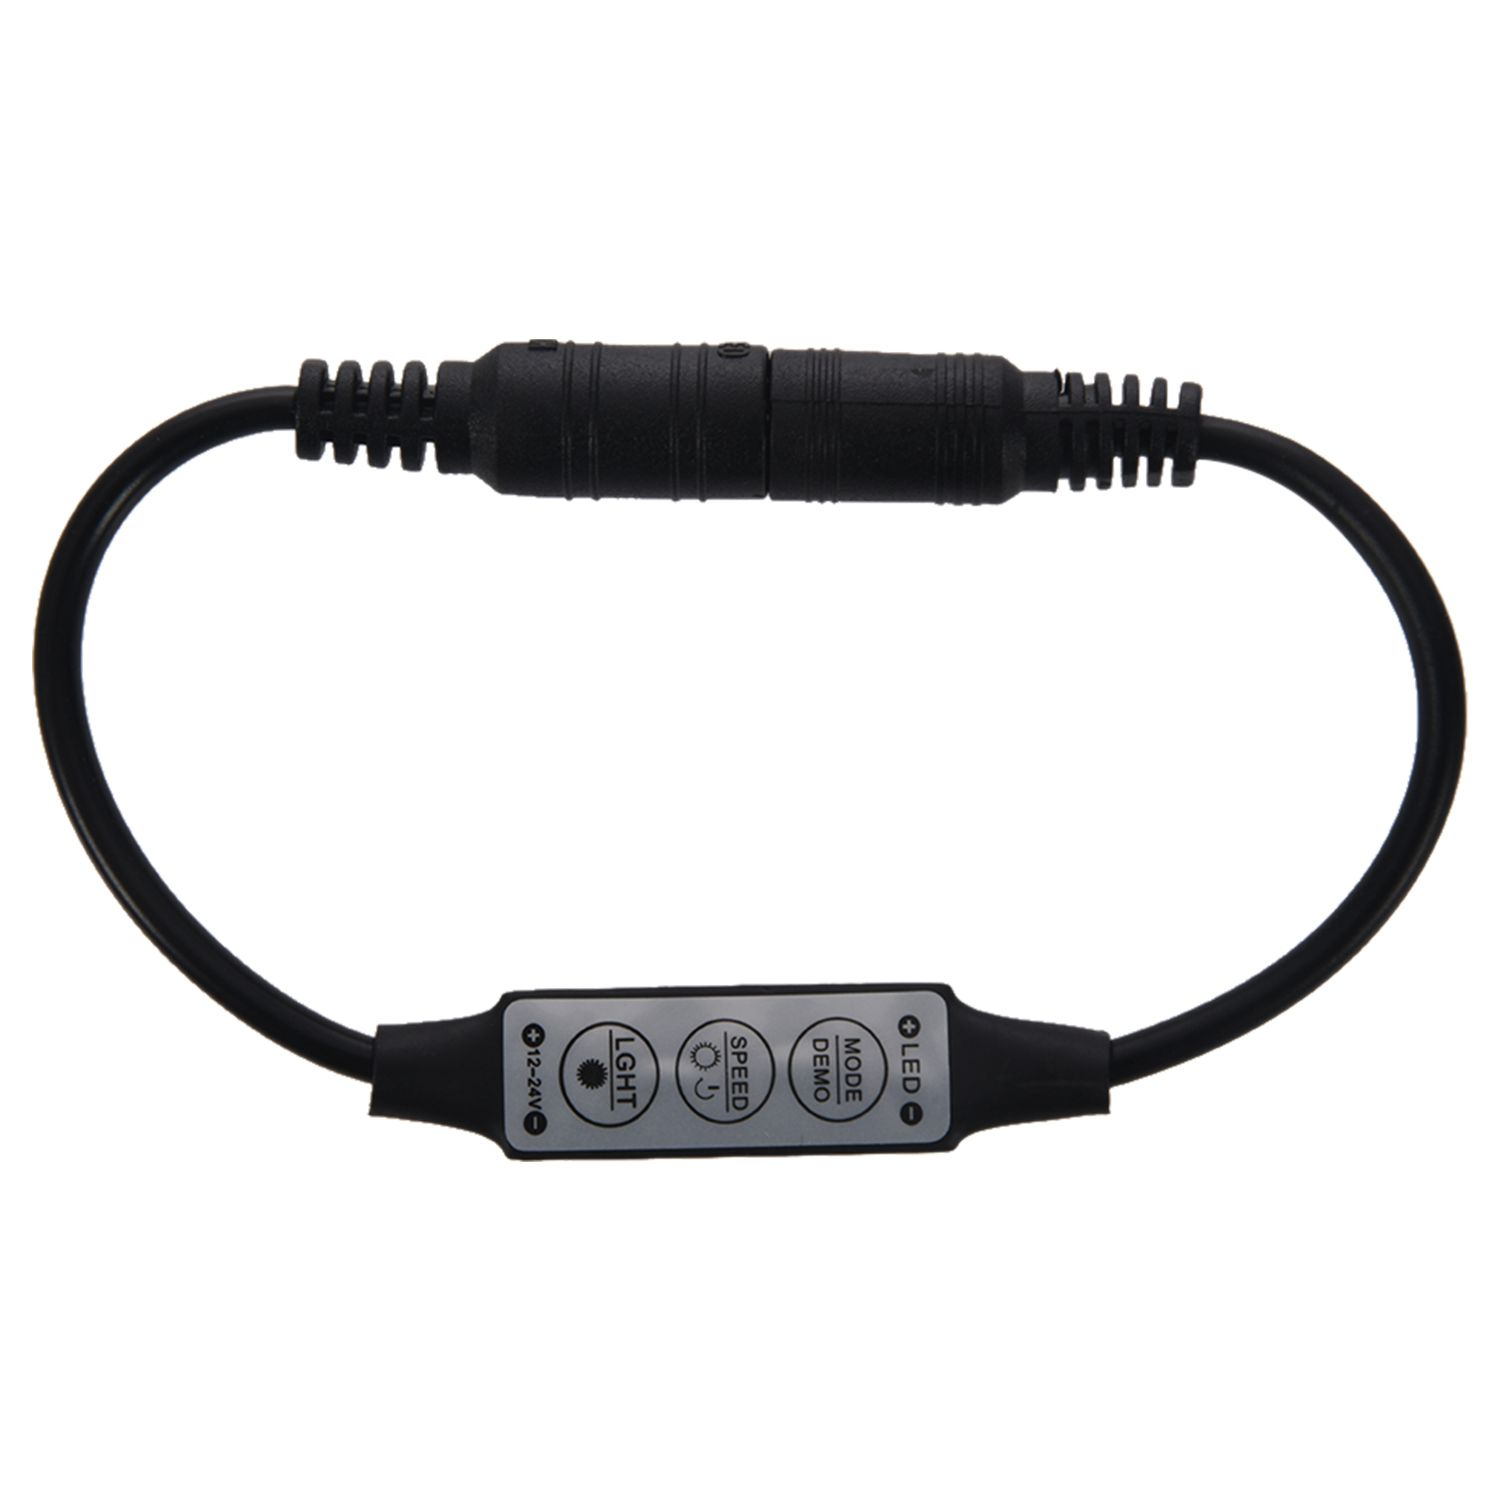 Top Quality Low-profile Inline Controller Mini 3 Key Dimmer Switch For LED Strip Light Black